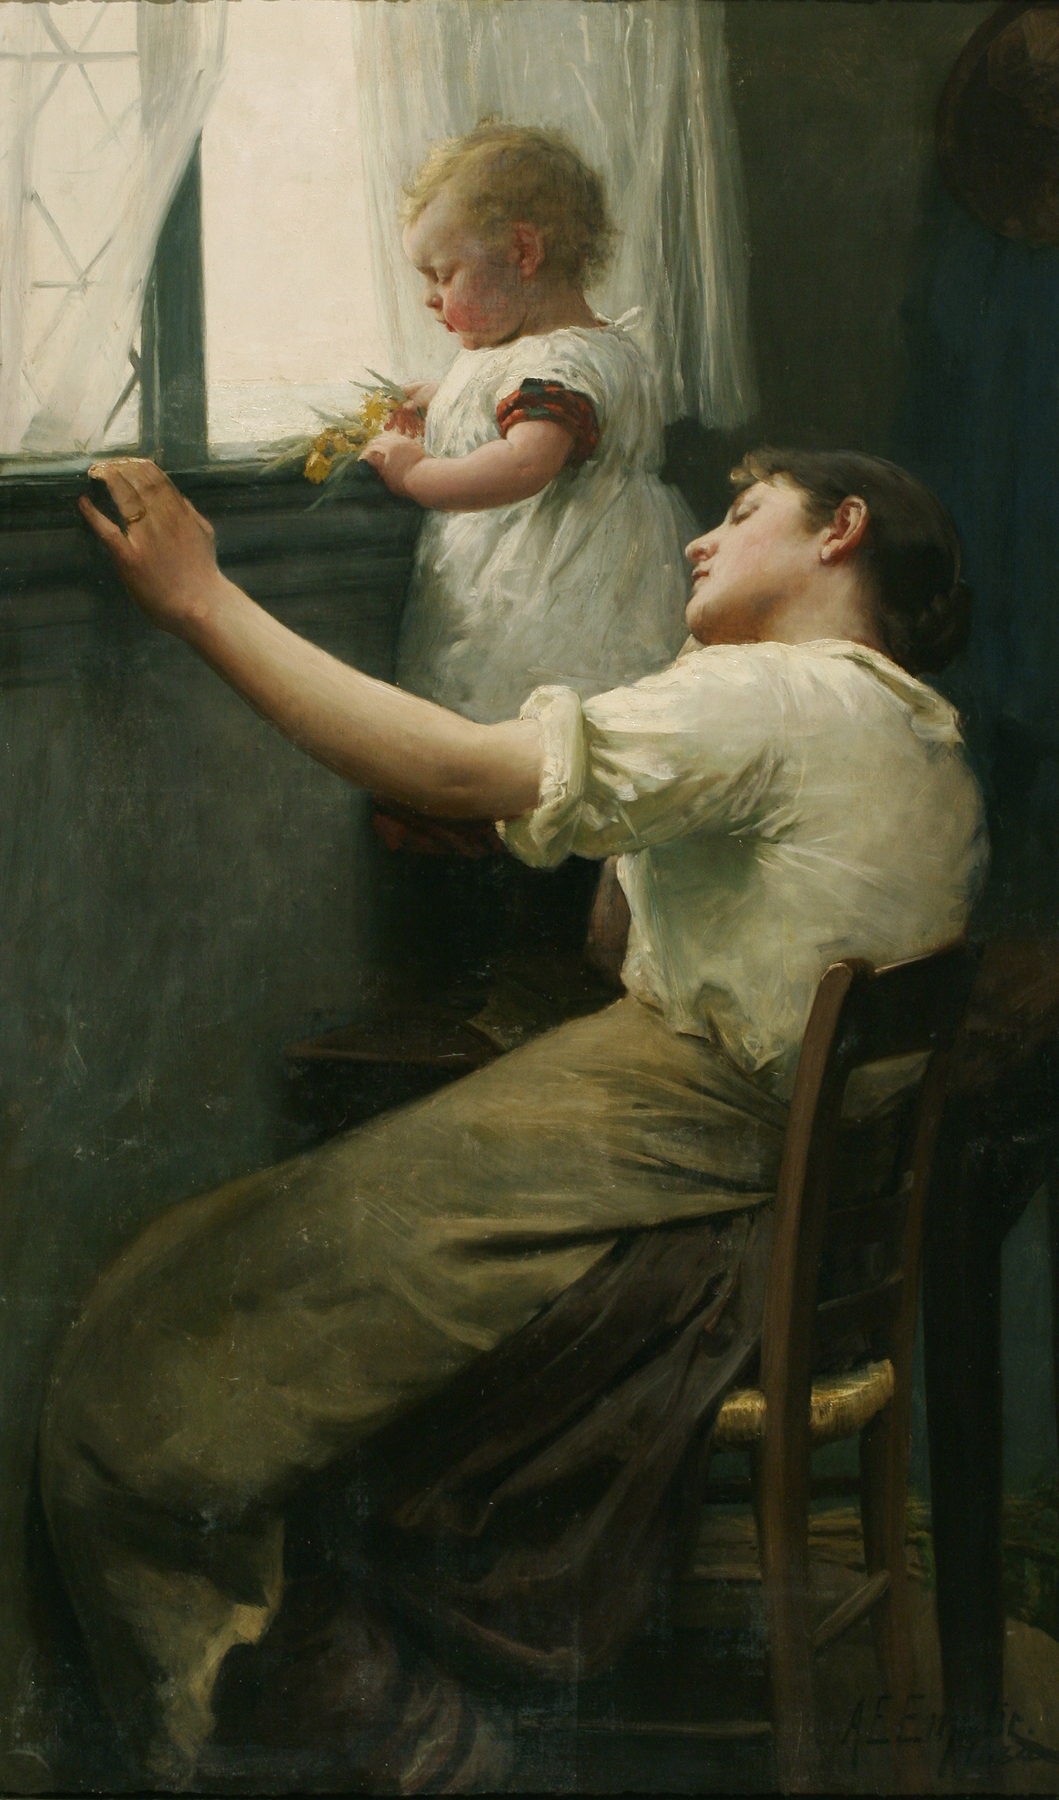 Alfred Emslie, Untitled (Mother and Child at Window), 1884. Heckscher Museum of Art; Gift of Theresa A. Cwierzyk and Sidney Gordon.